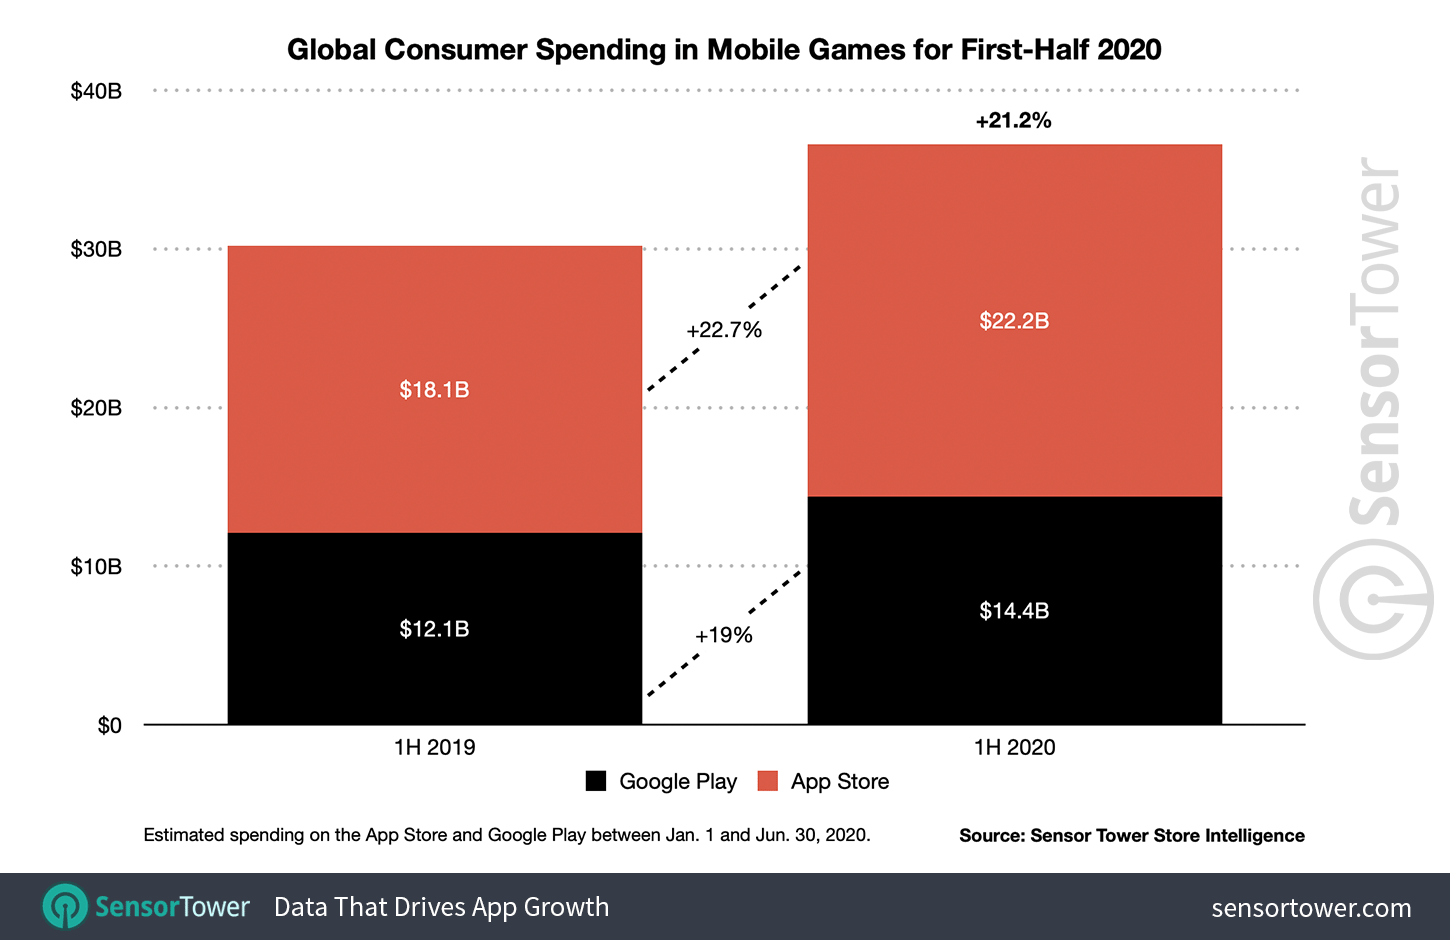 1H 2020 Mobile Game Revenue